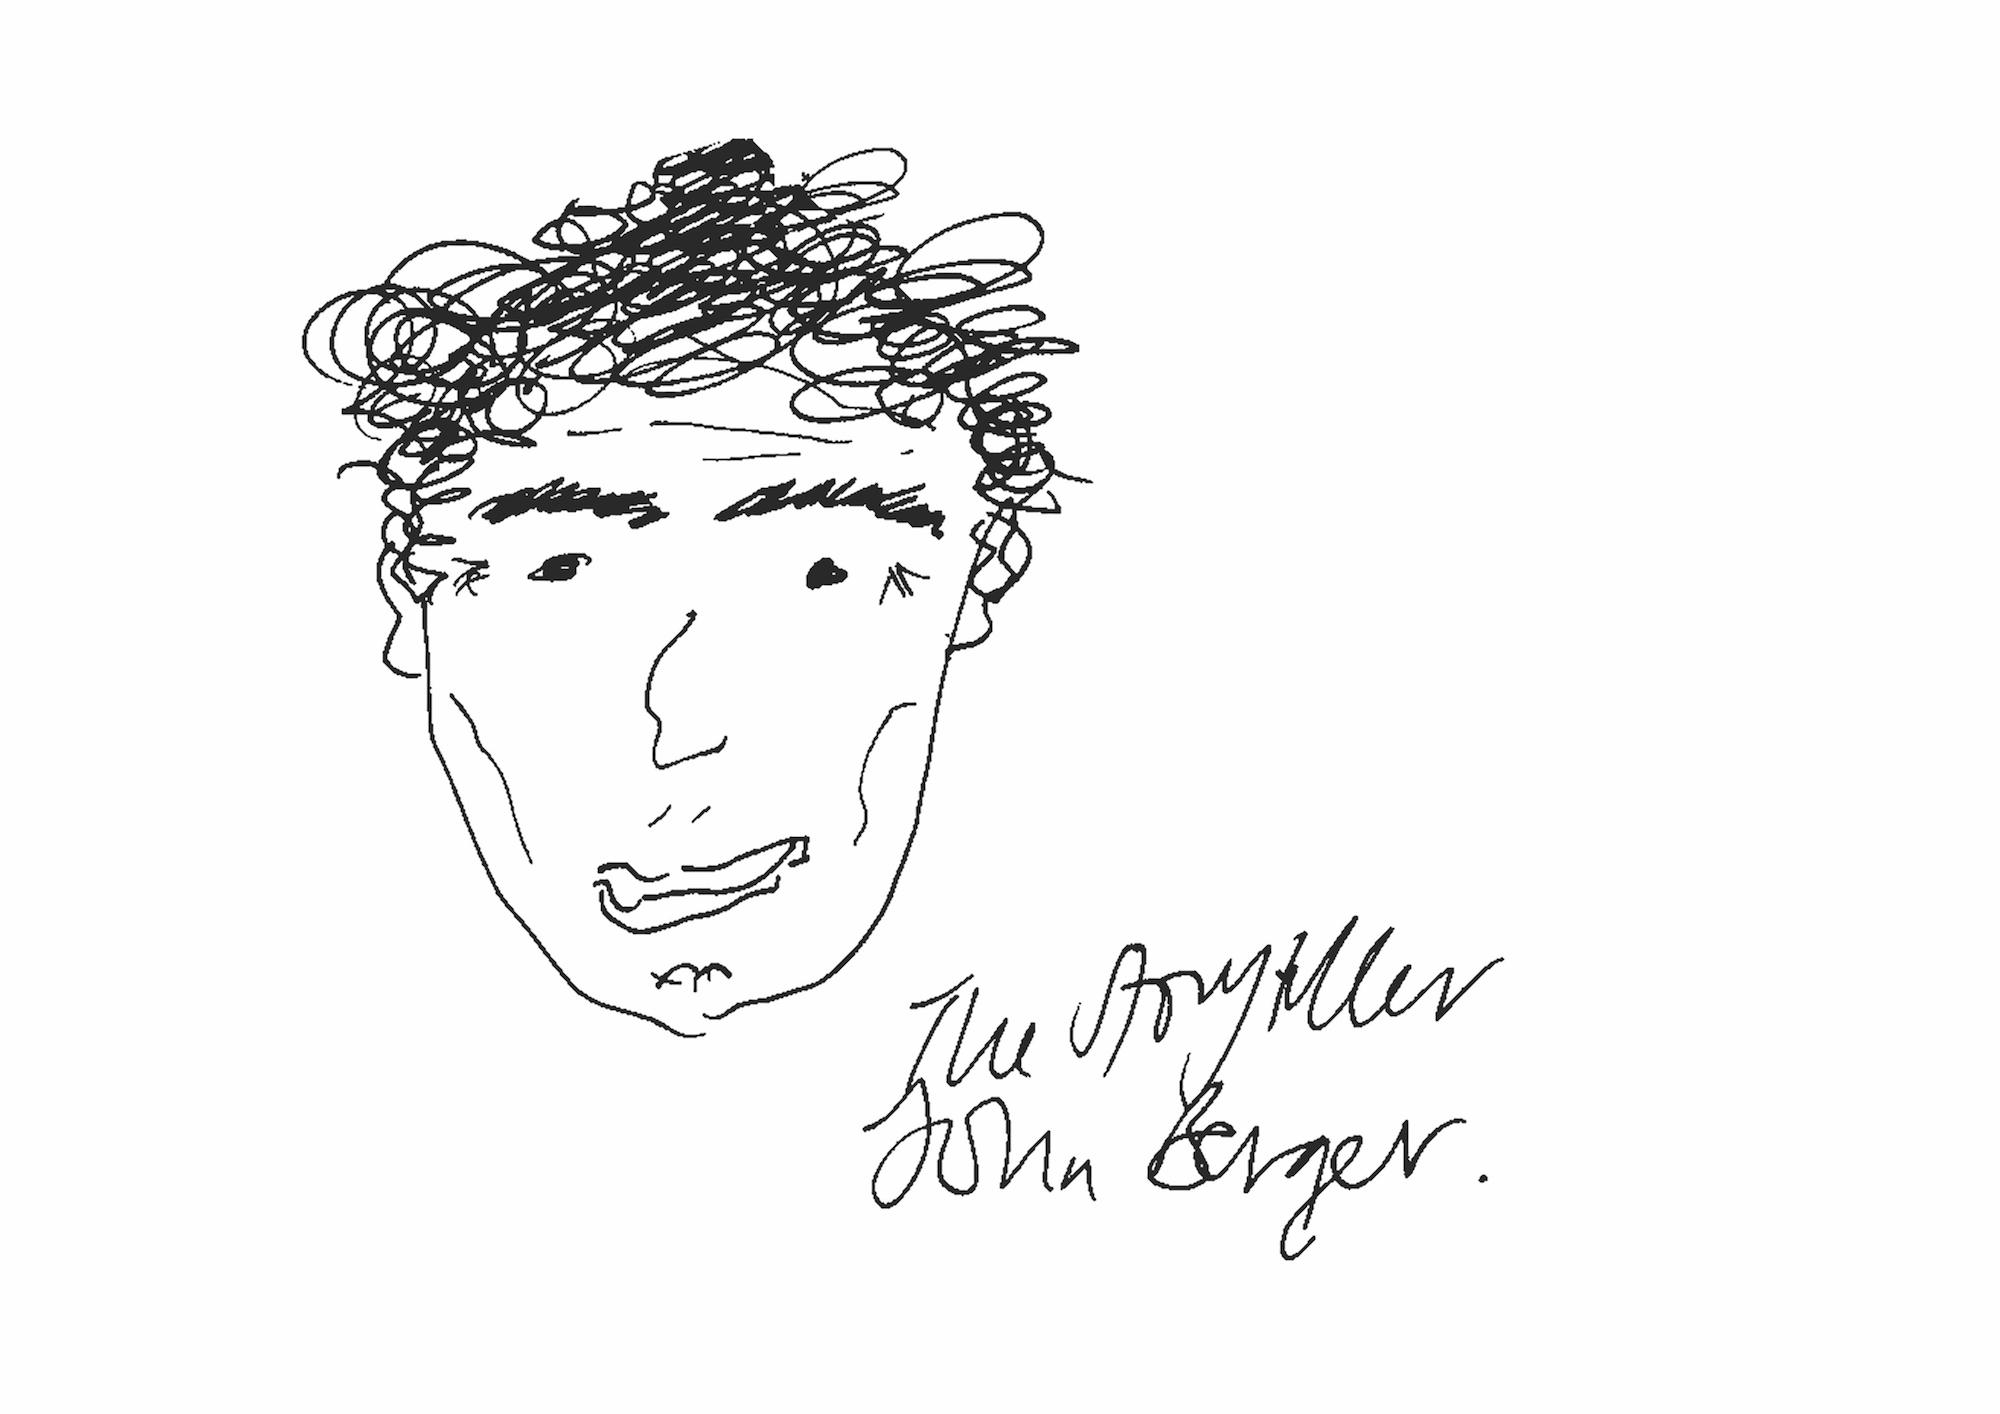 John Berger: the Storyteller